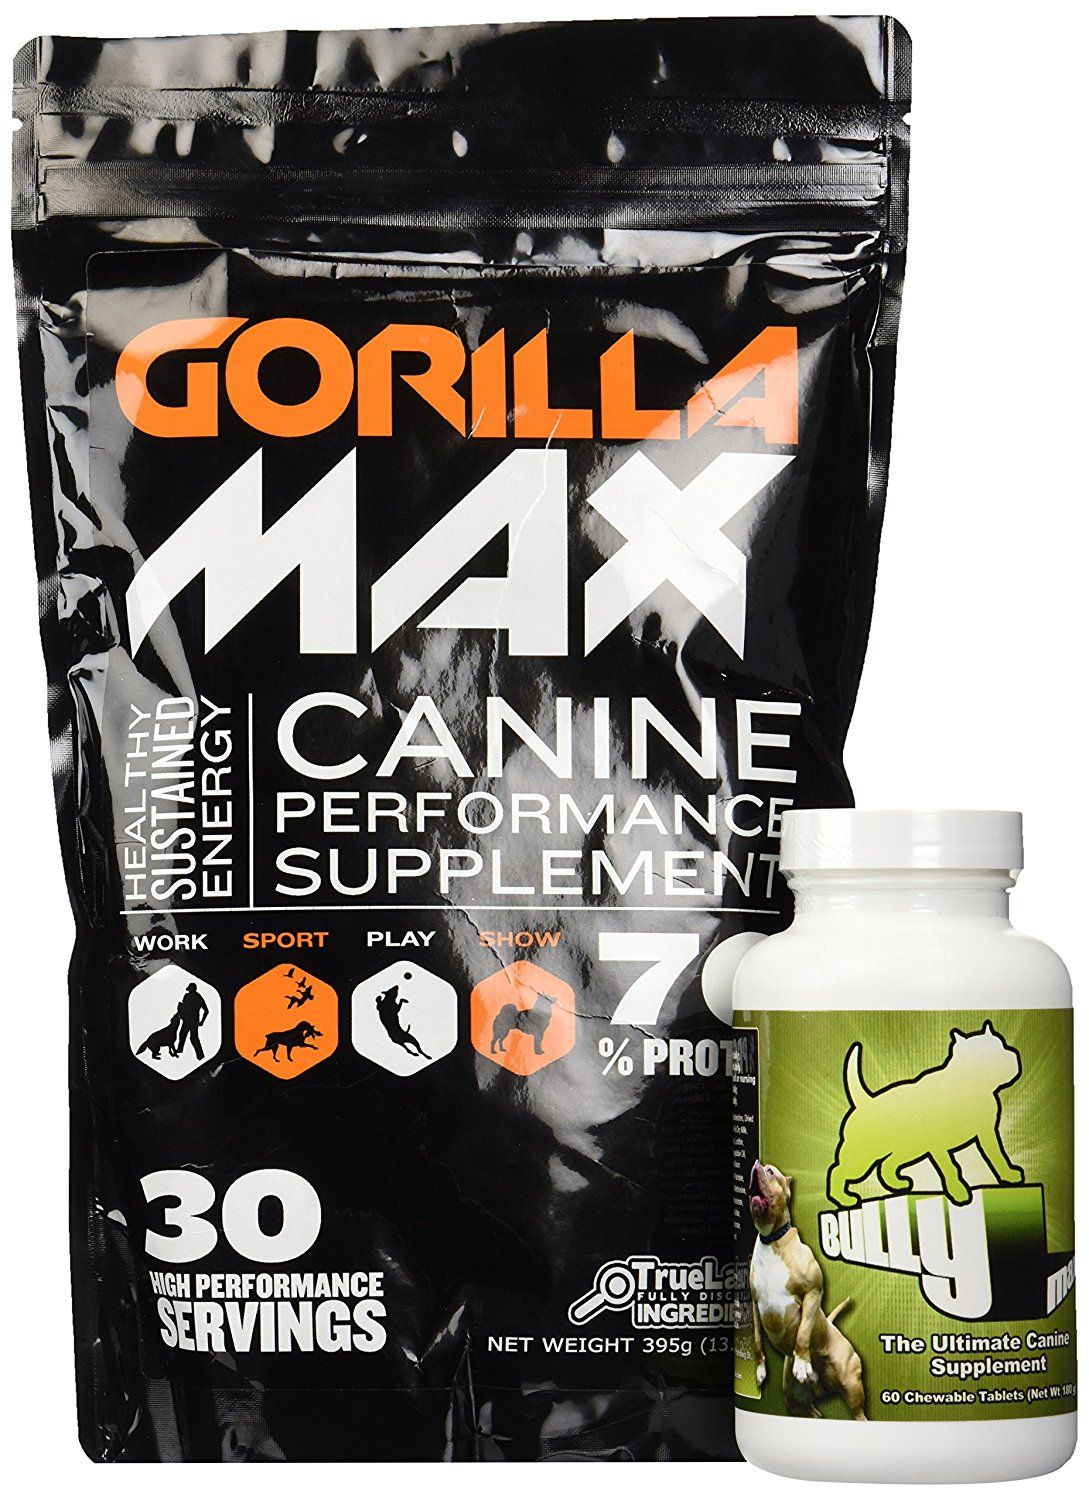 Bully max dog muscle supplement bully max and gorilla max